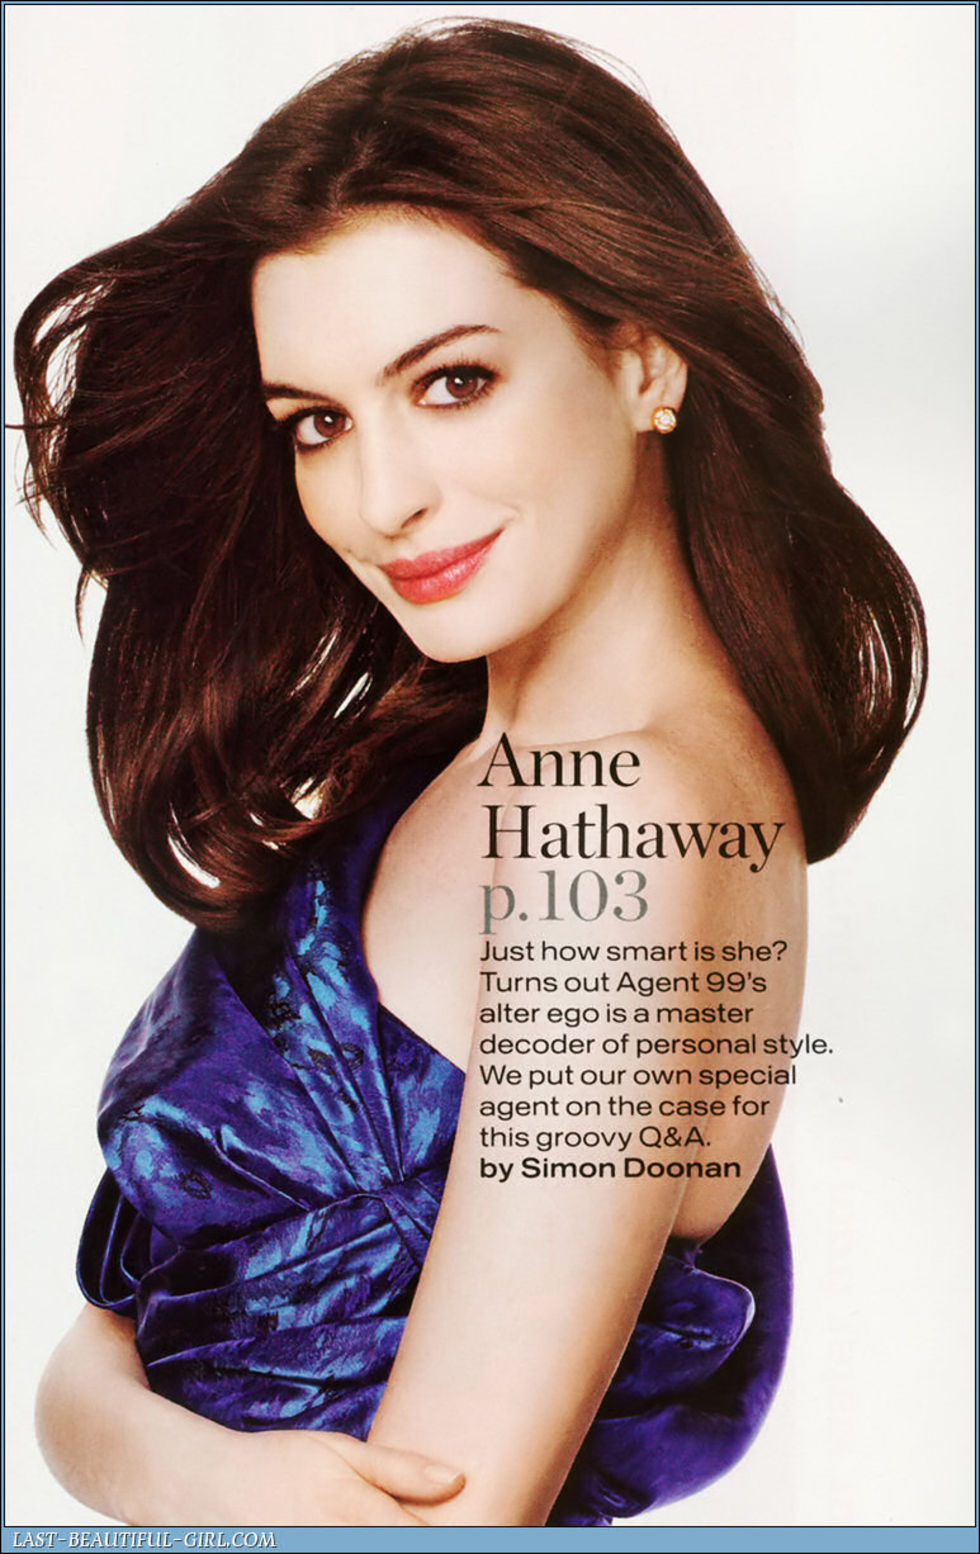 anne-hathaway-instyle-magazine-july-2008-01